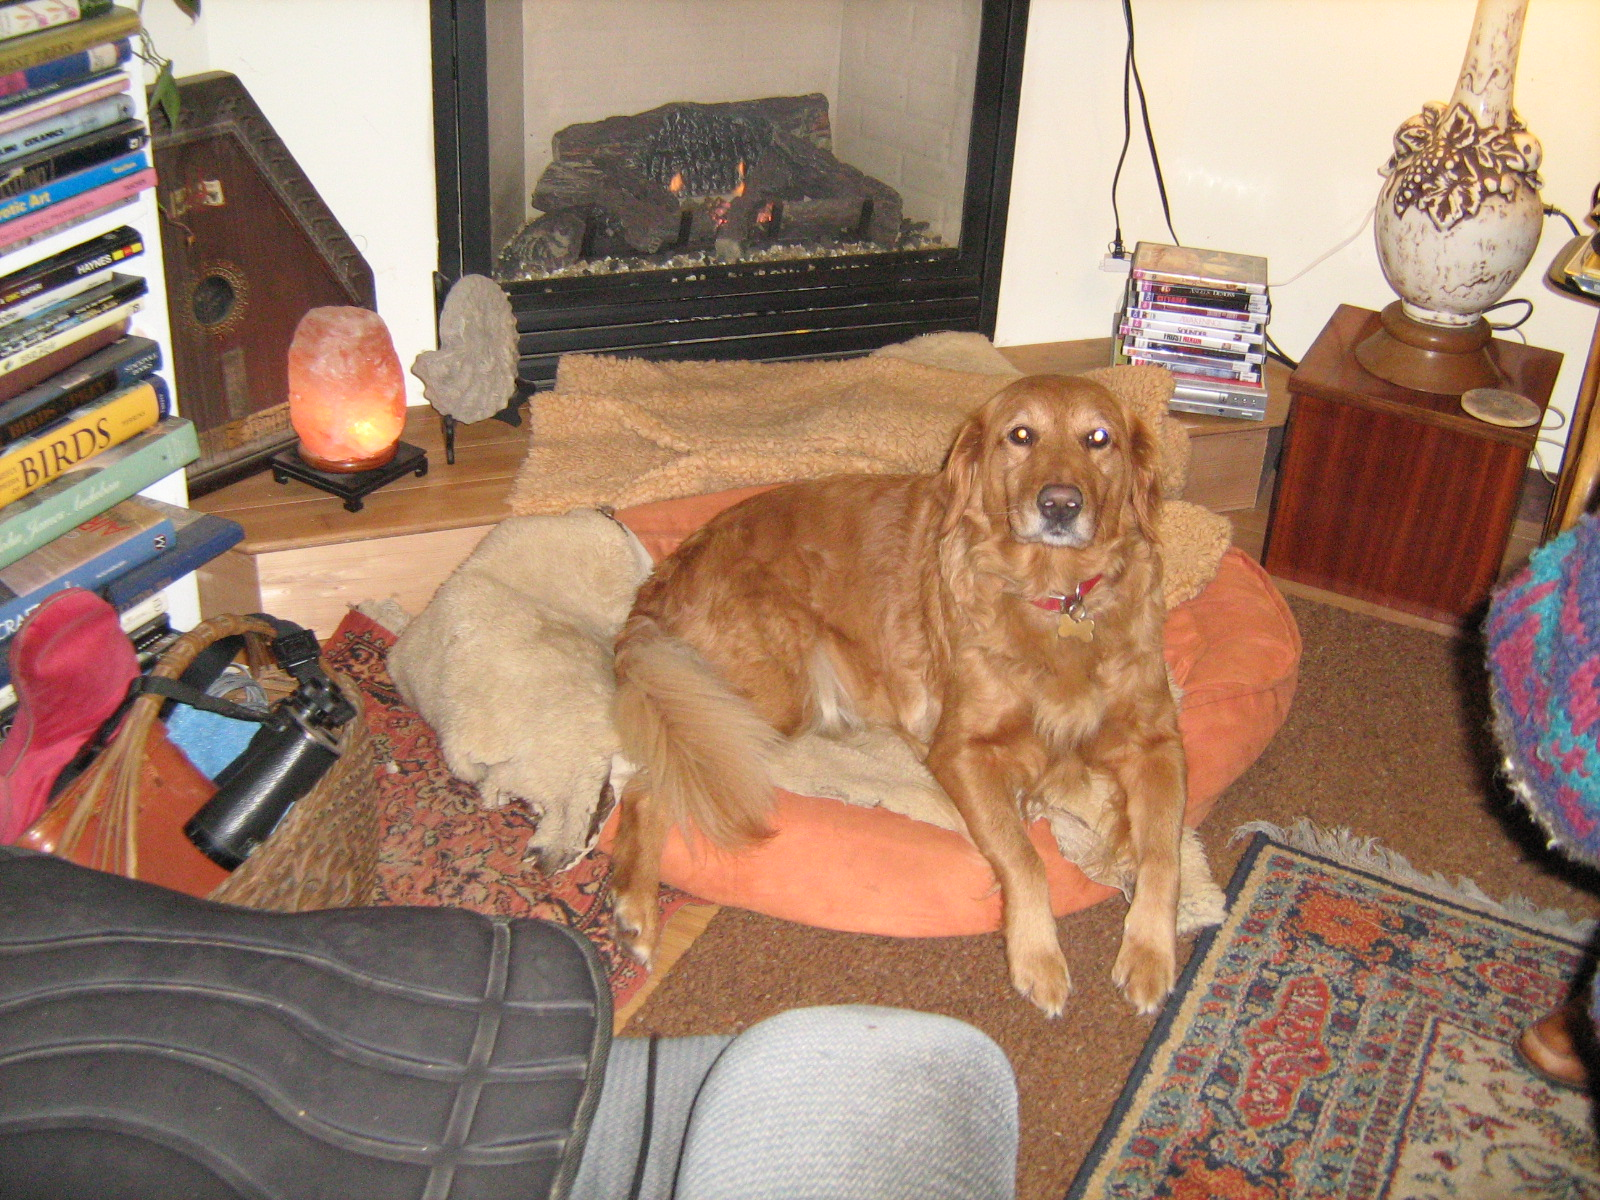 Rosie on her bed in front of the fireplace.